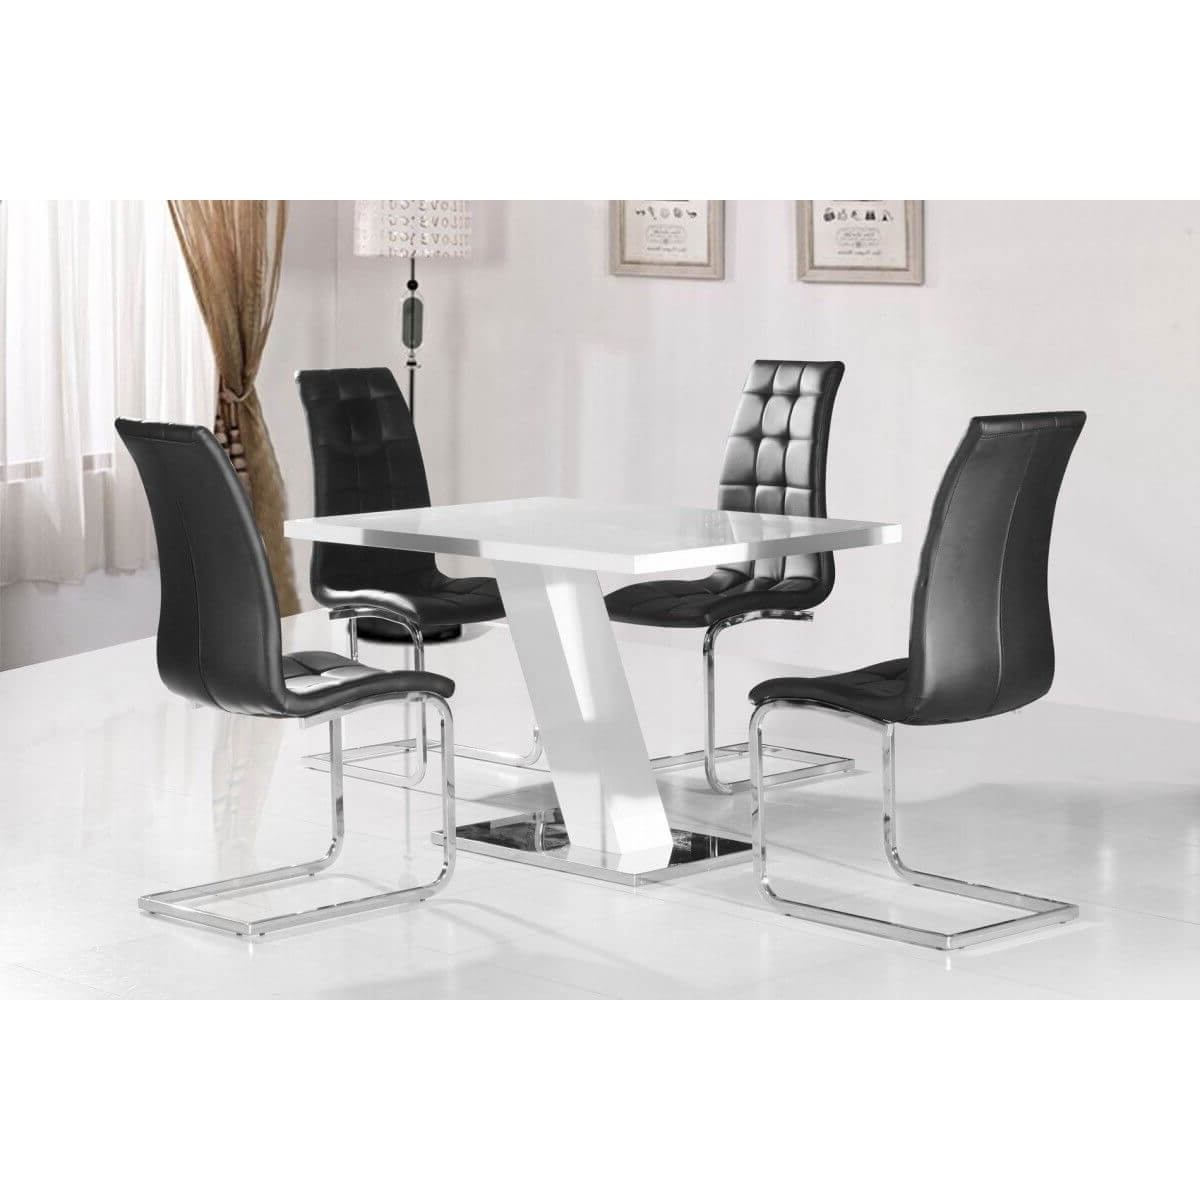 Trendy White High Gloss Dining Tables And Chairs For Arizona White High Gloss Dining Set (View 16 of 25)